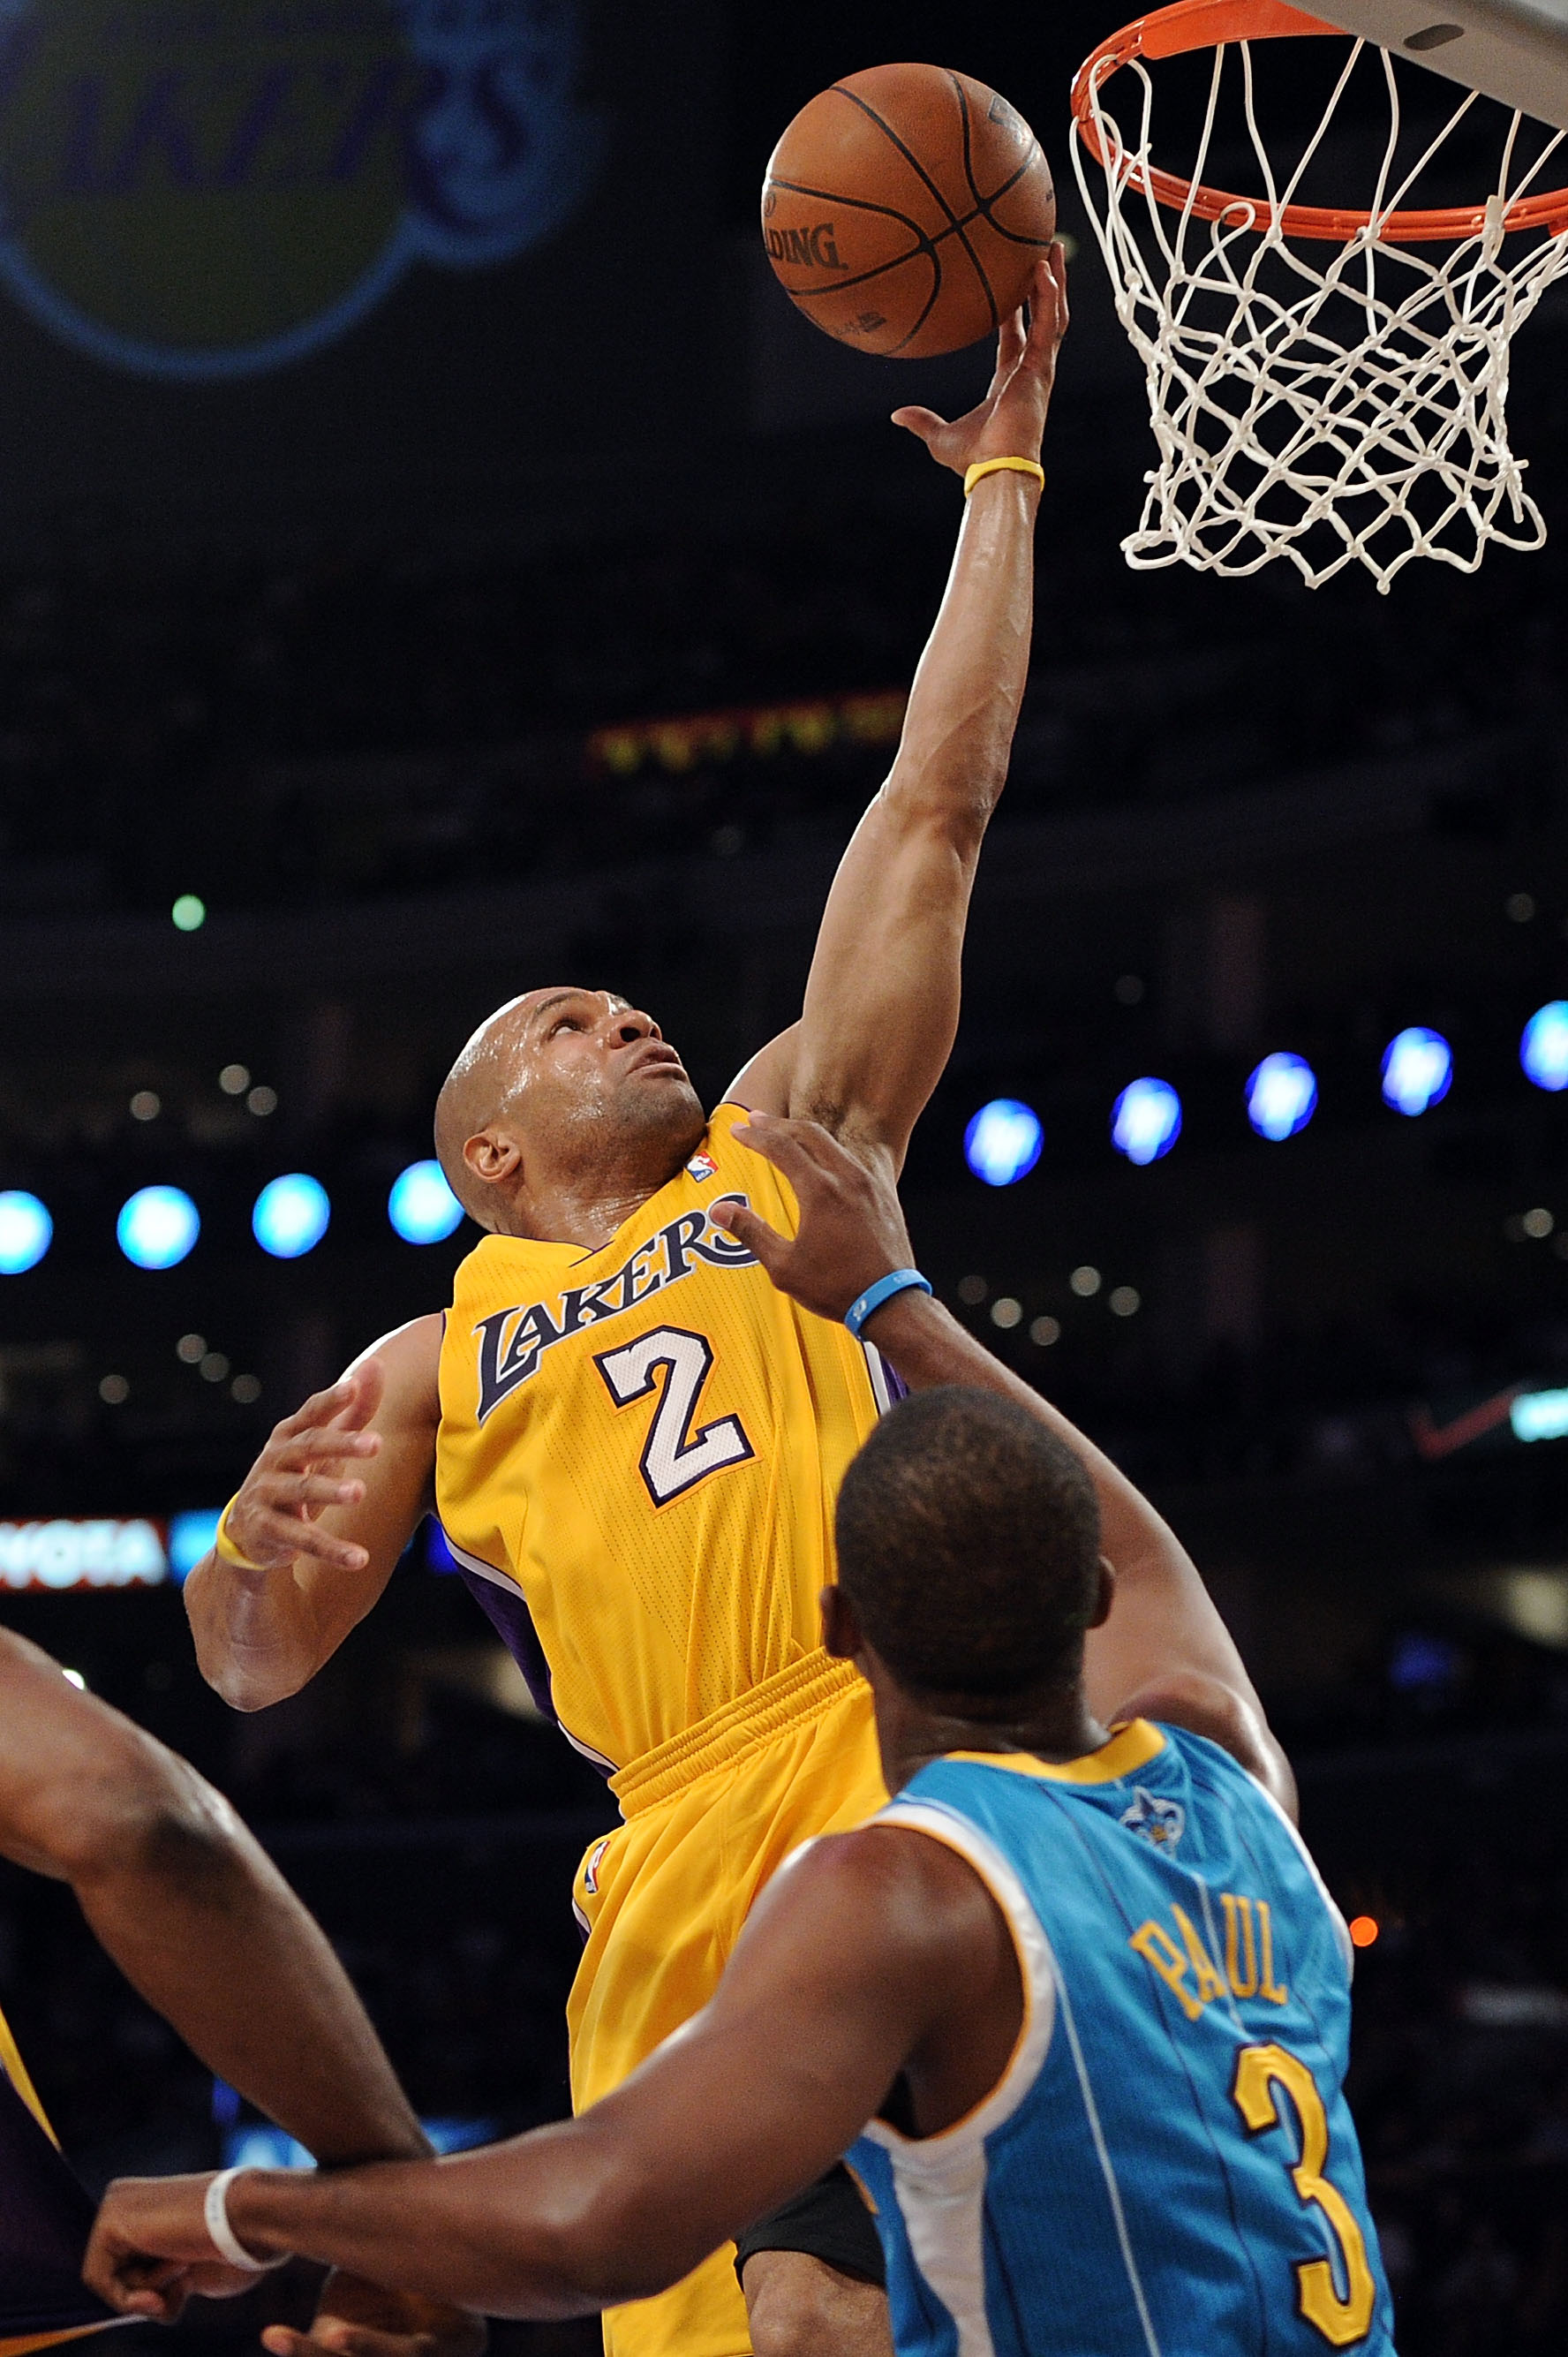 LOS ANGELES, CA - APRIL 20:  Derek Fisher #2 of the Los Angeles Lakers shoots over Chris Paul #3 of the New Orleans Hornets in the first quarter in Game Two of the Western Conference Quarterfinals in the 2011 NBA Playoffs on April 20, 2011 at Staples Cent